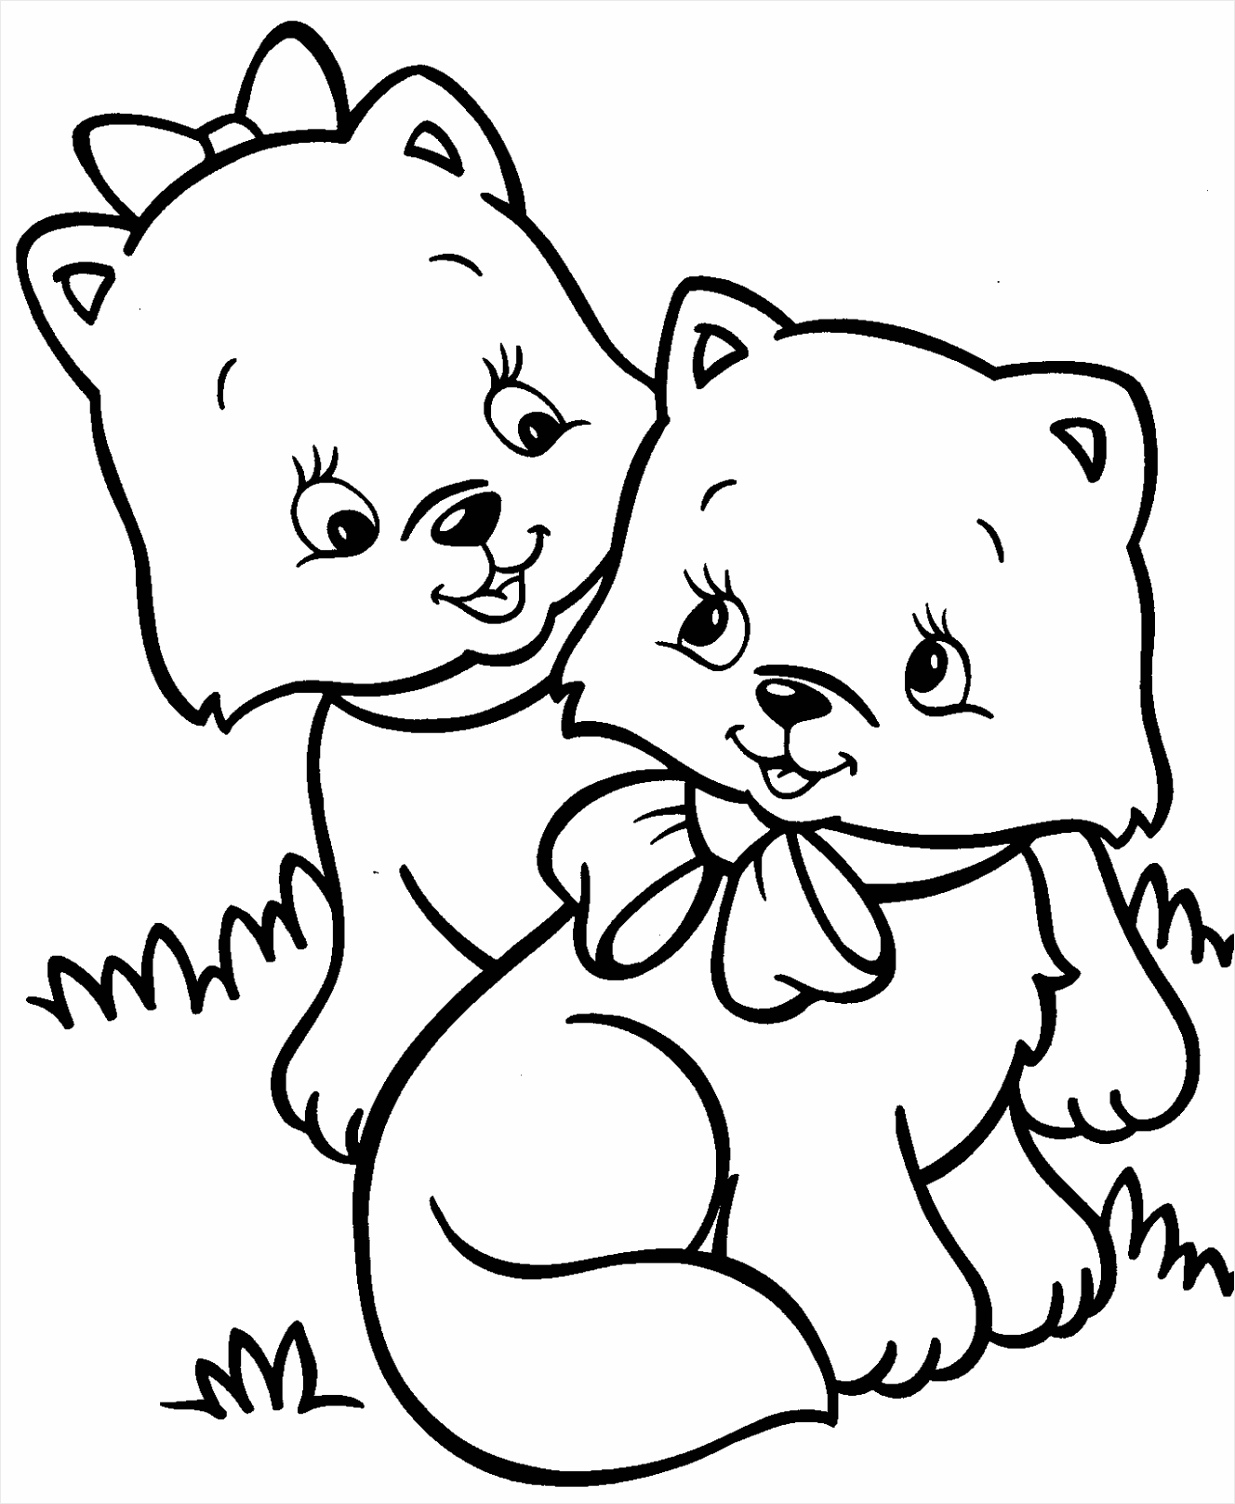 Kitten Coloring Pages yptoi